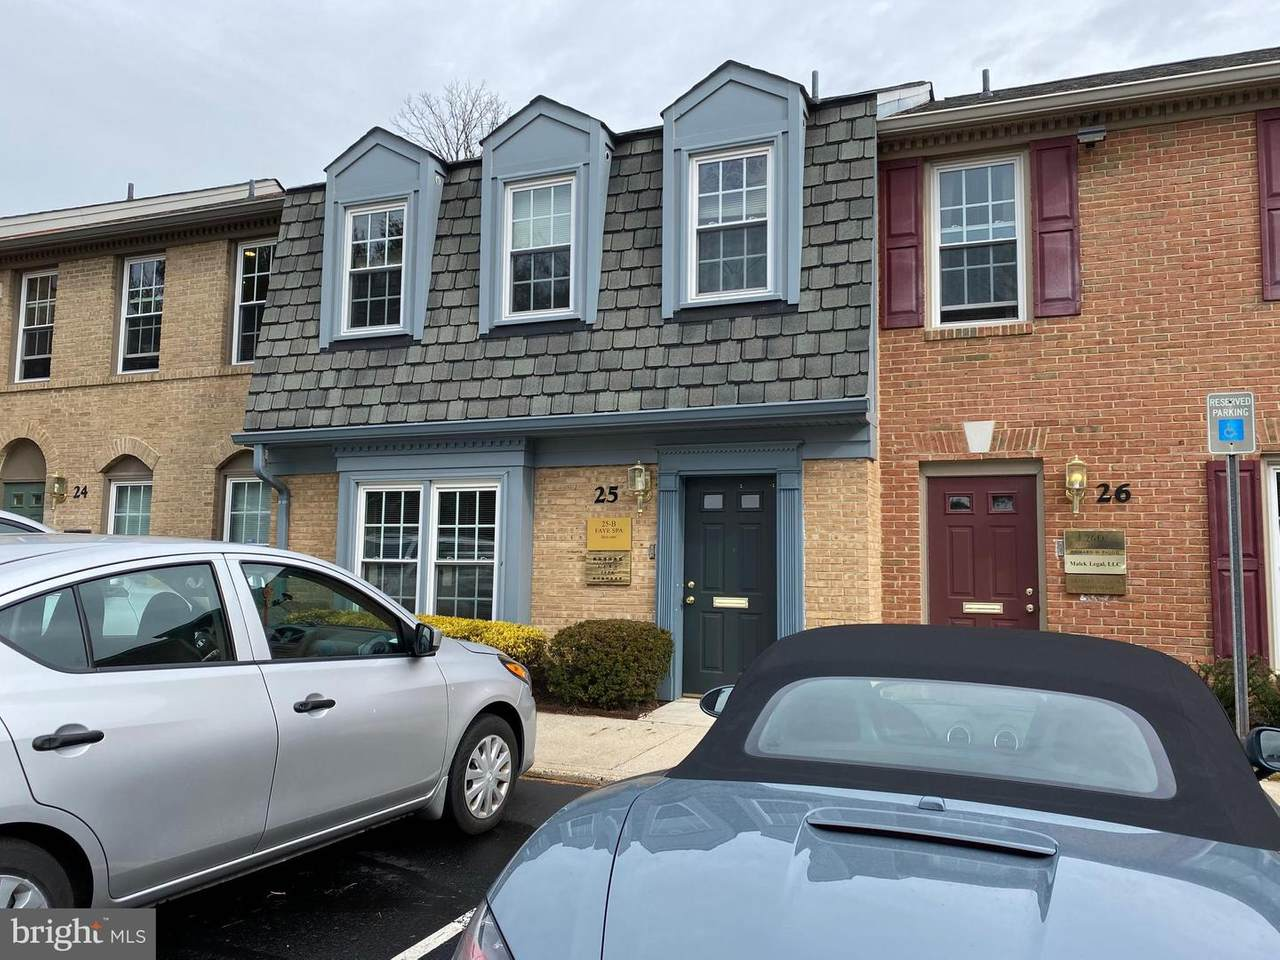 932 Hungerford Drive - Photo 1